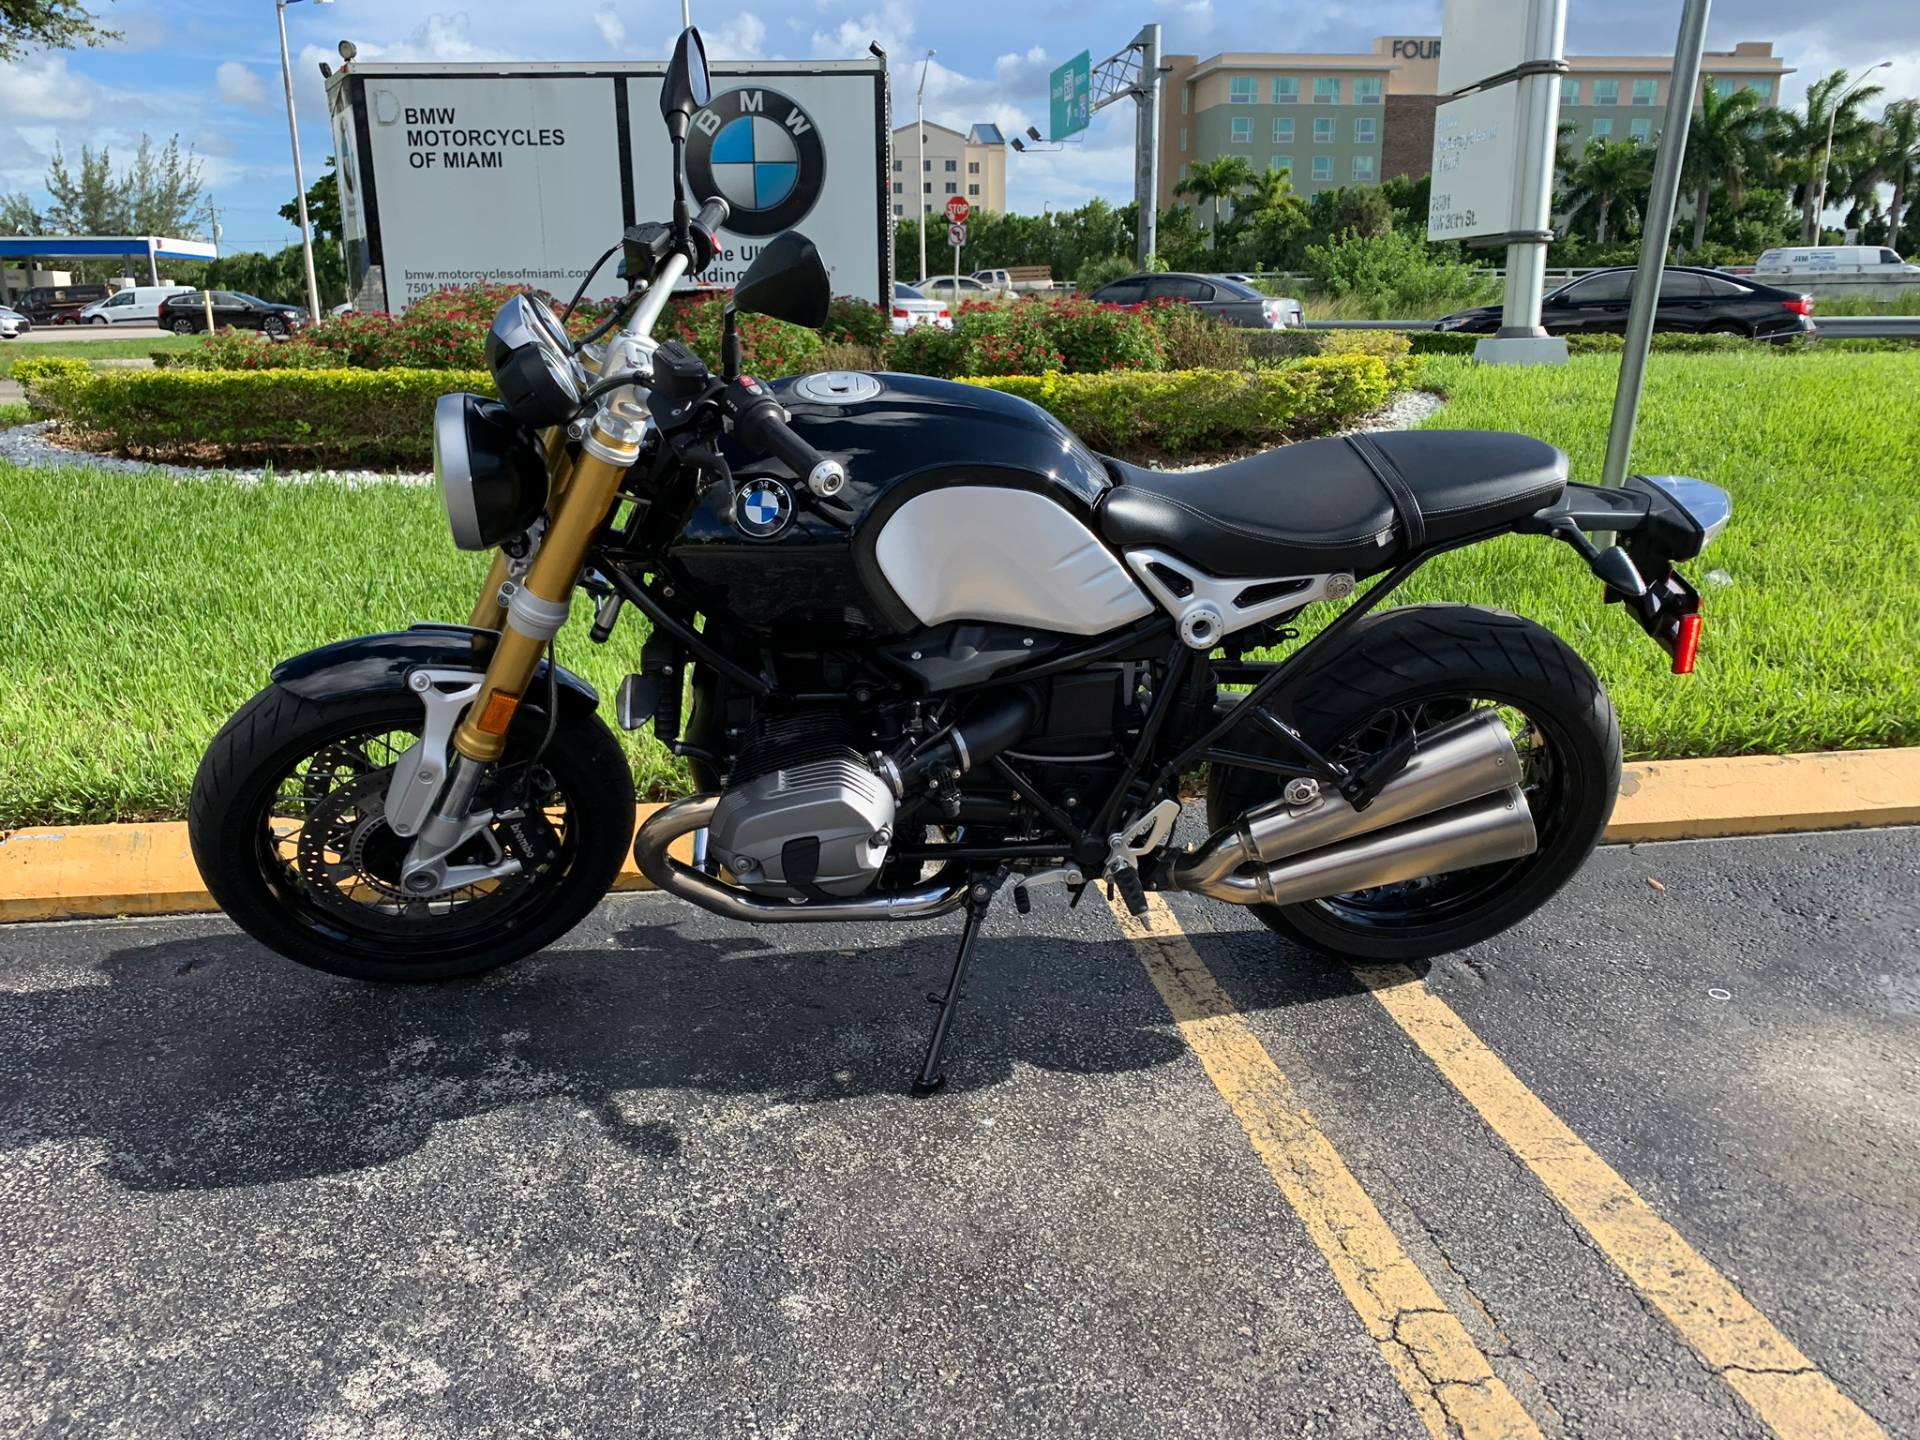 Used 2016 BMW R NineT for sale, BMW for sale, BMW Motorcycle Café Racer, new BMW Caffe, Cafe Racer, BMW. BMW Motorcycles of Miami, Motorcycles of Miami, Motorcycles Miami, New Motorcycles, Used Motorcycles, pre-owned. #BMWMotorcyclesOfMiami #MotorcyclesOfMiami. - Photo 9